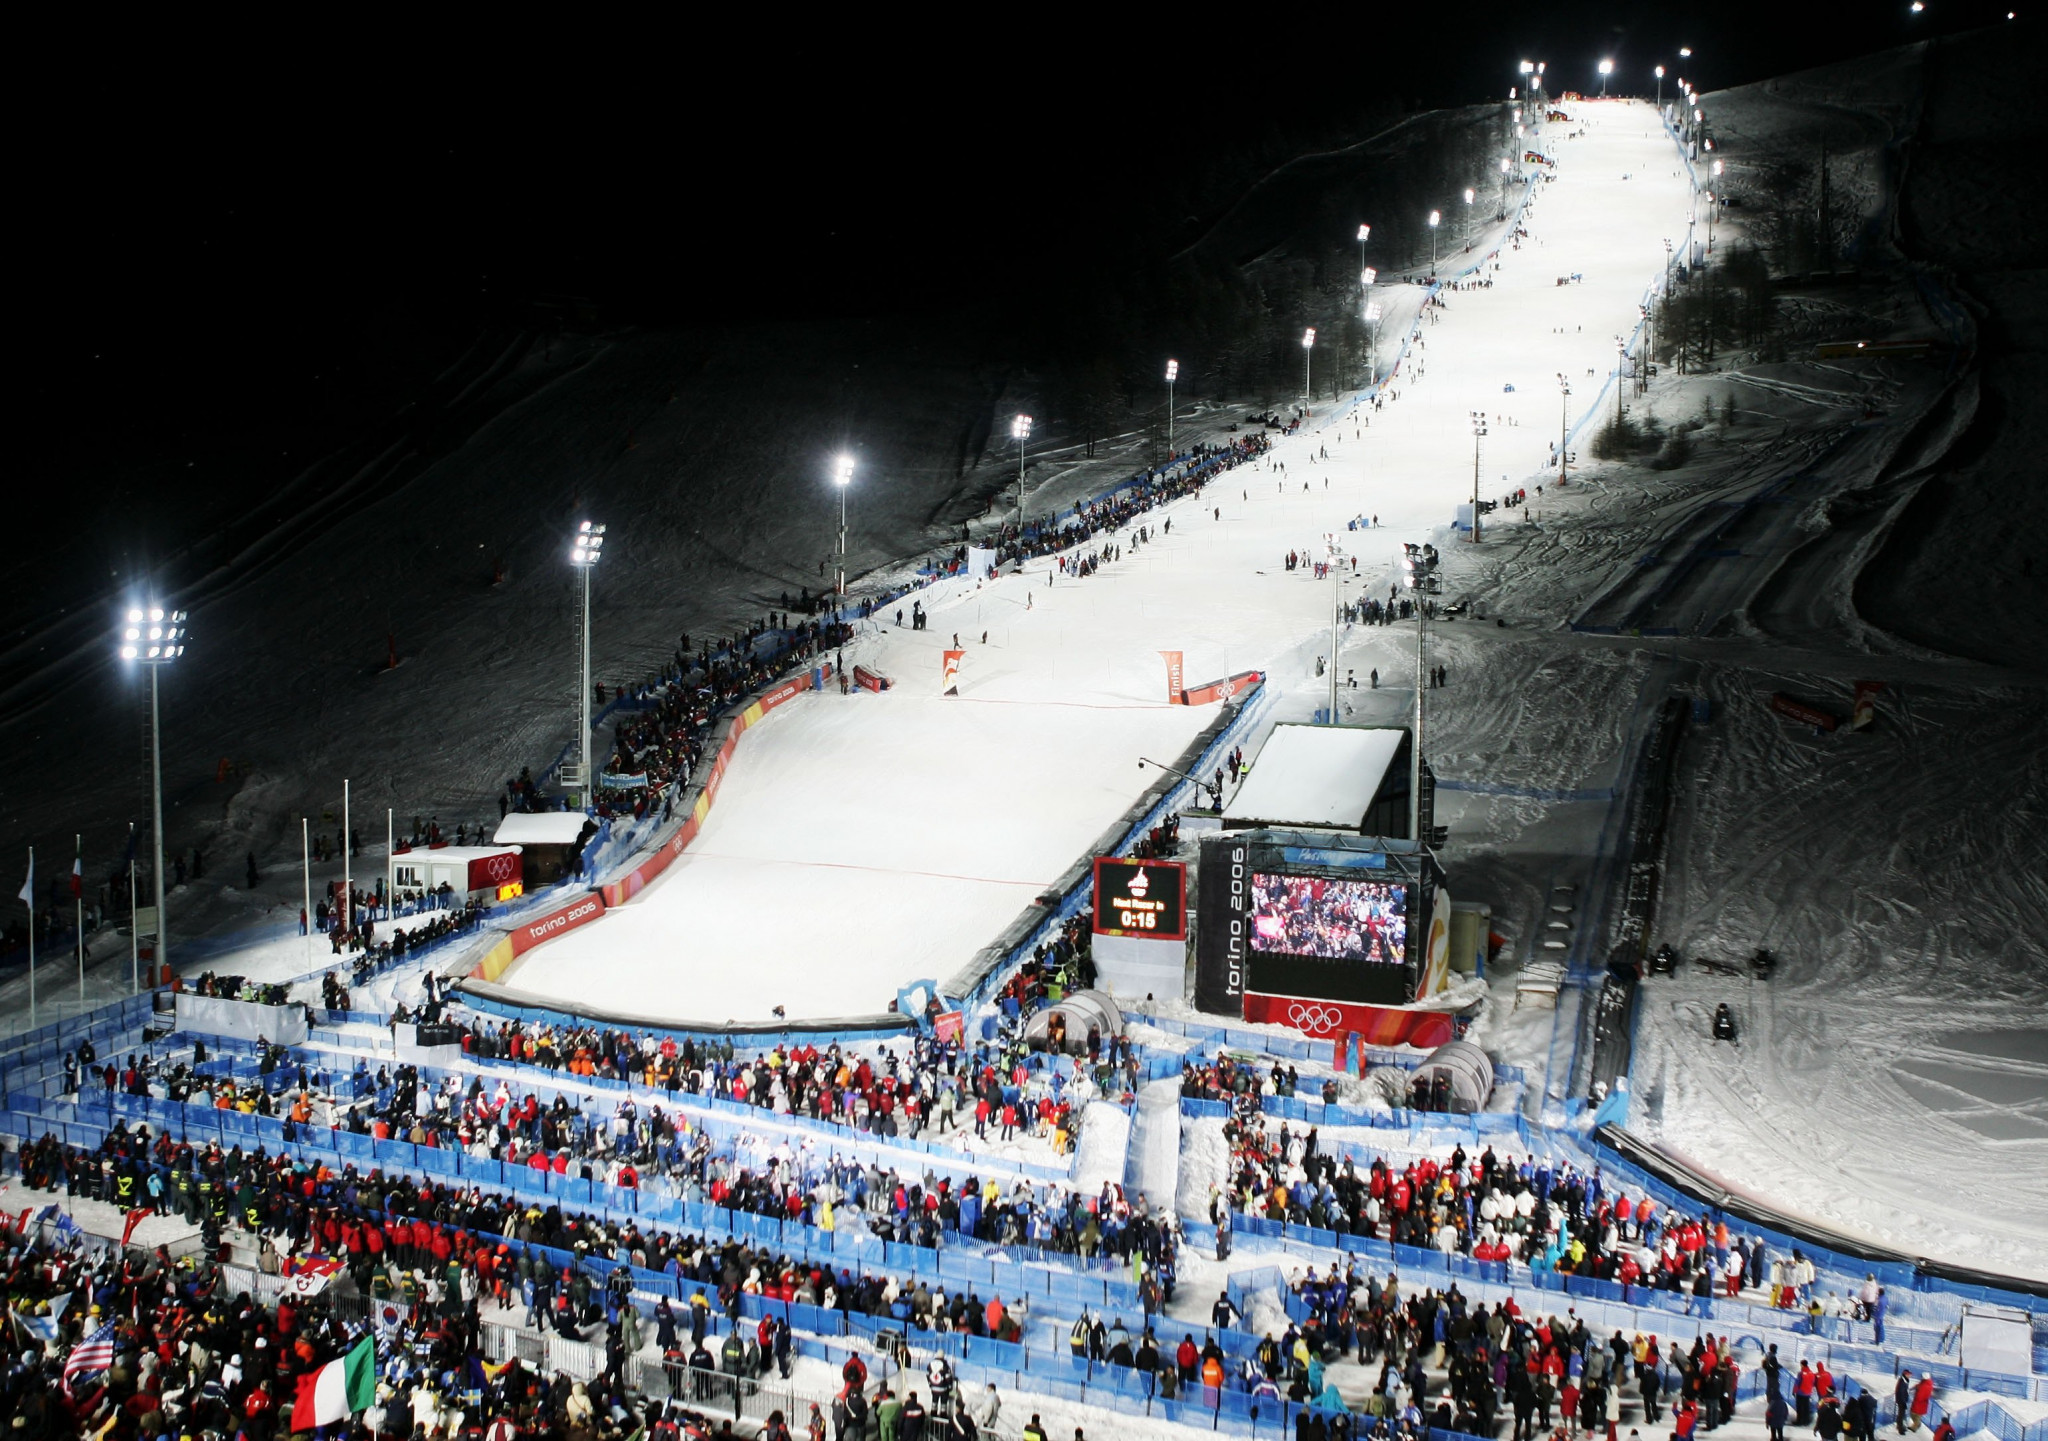 Sestriere hosted Alpine skiing during the Turin 2006 Winter Olympics ©Getty Images